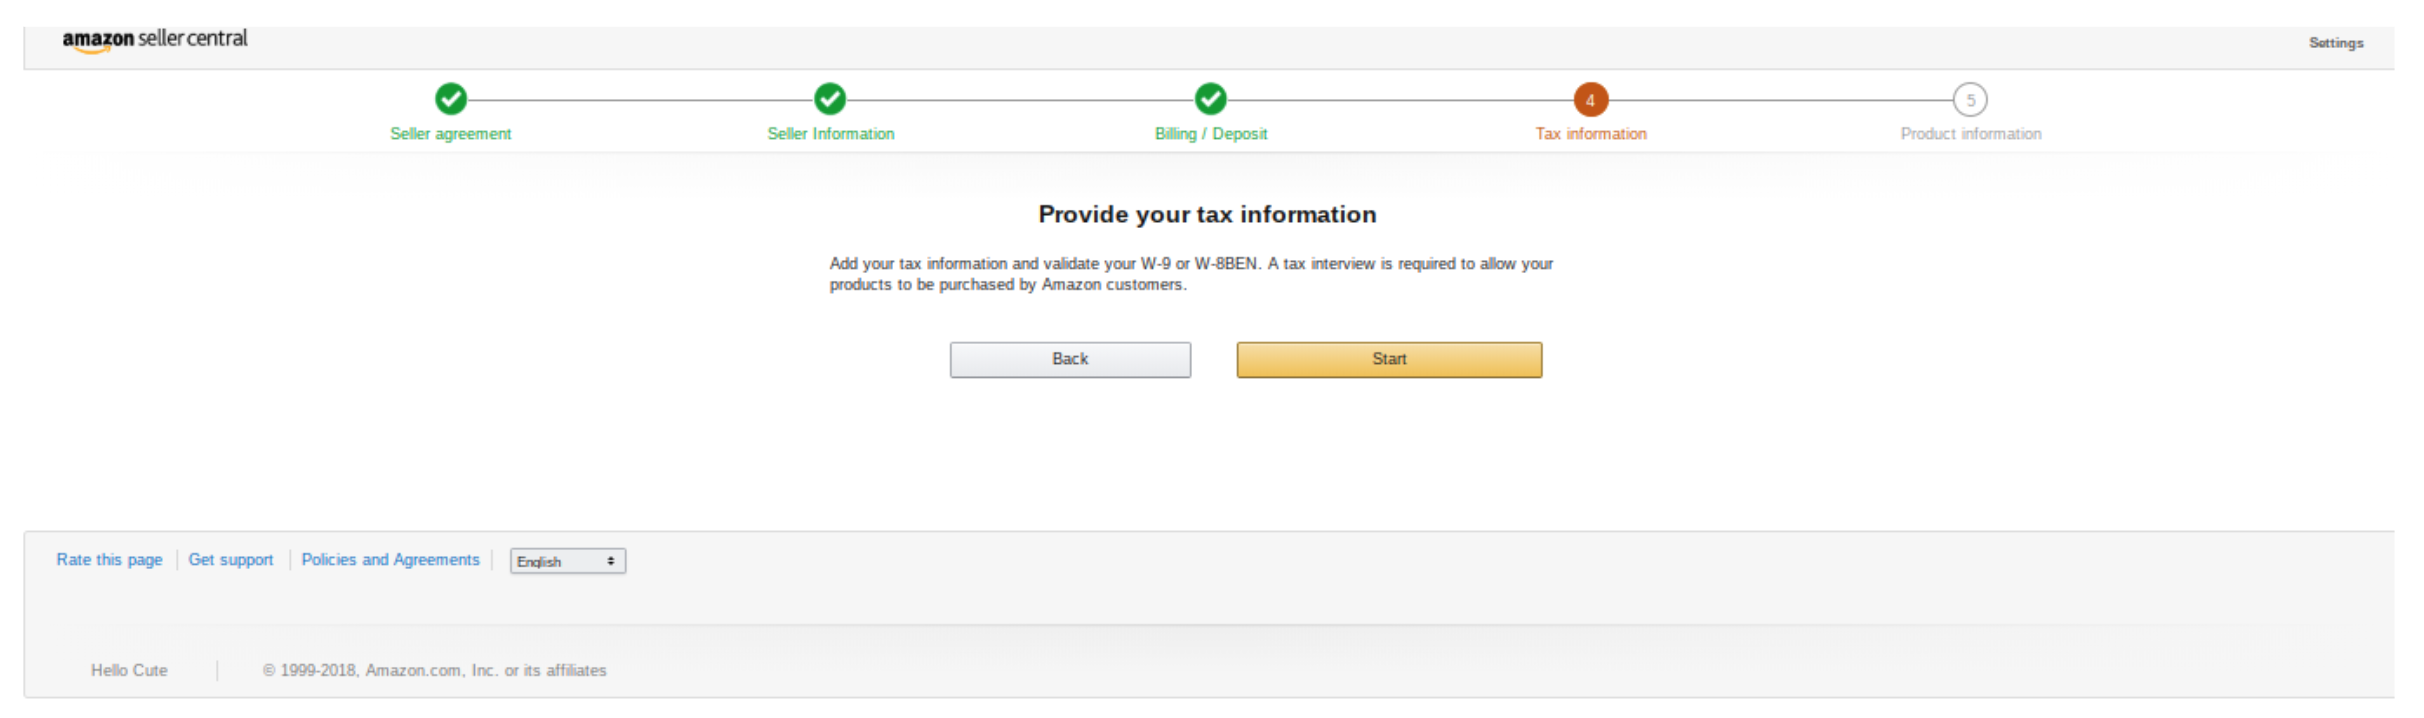 Opening new amazon seller account - tax information page